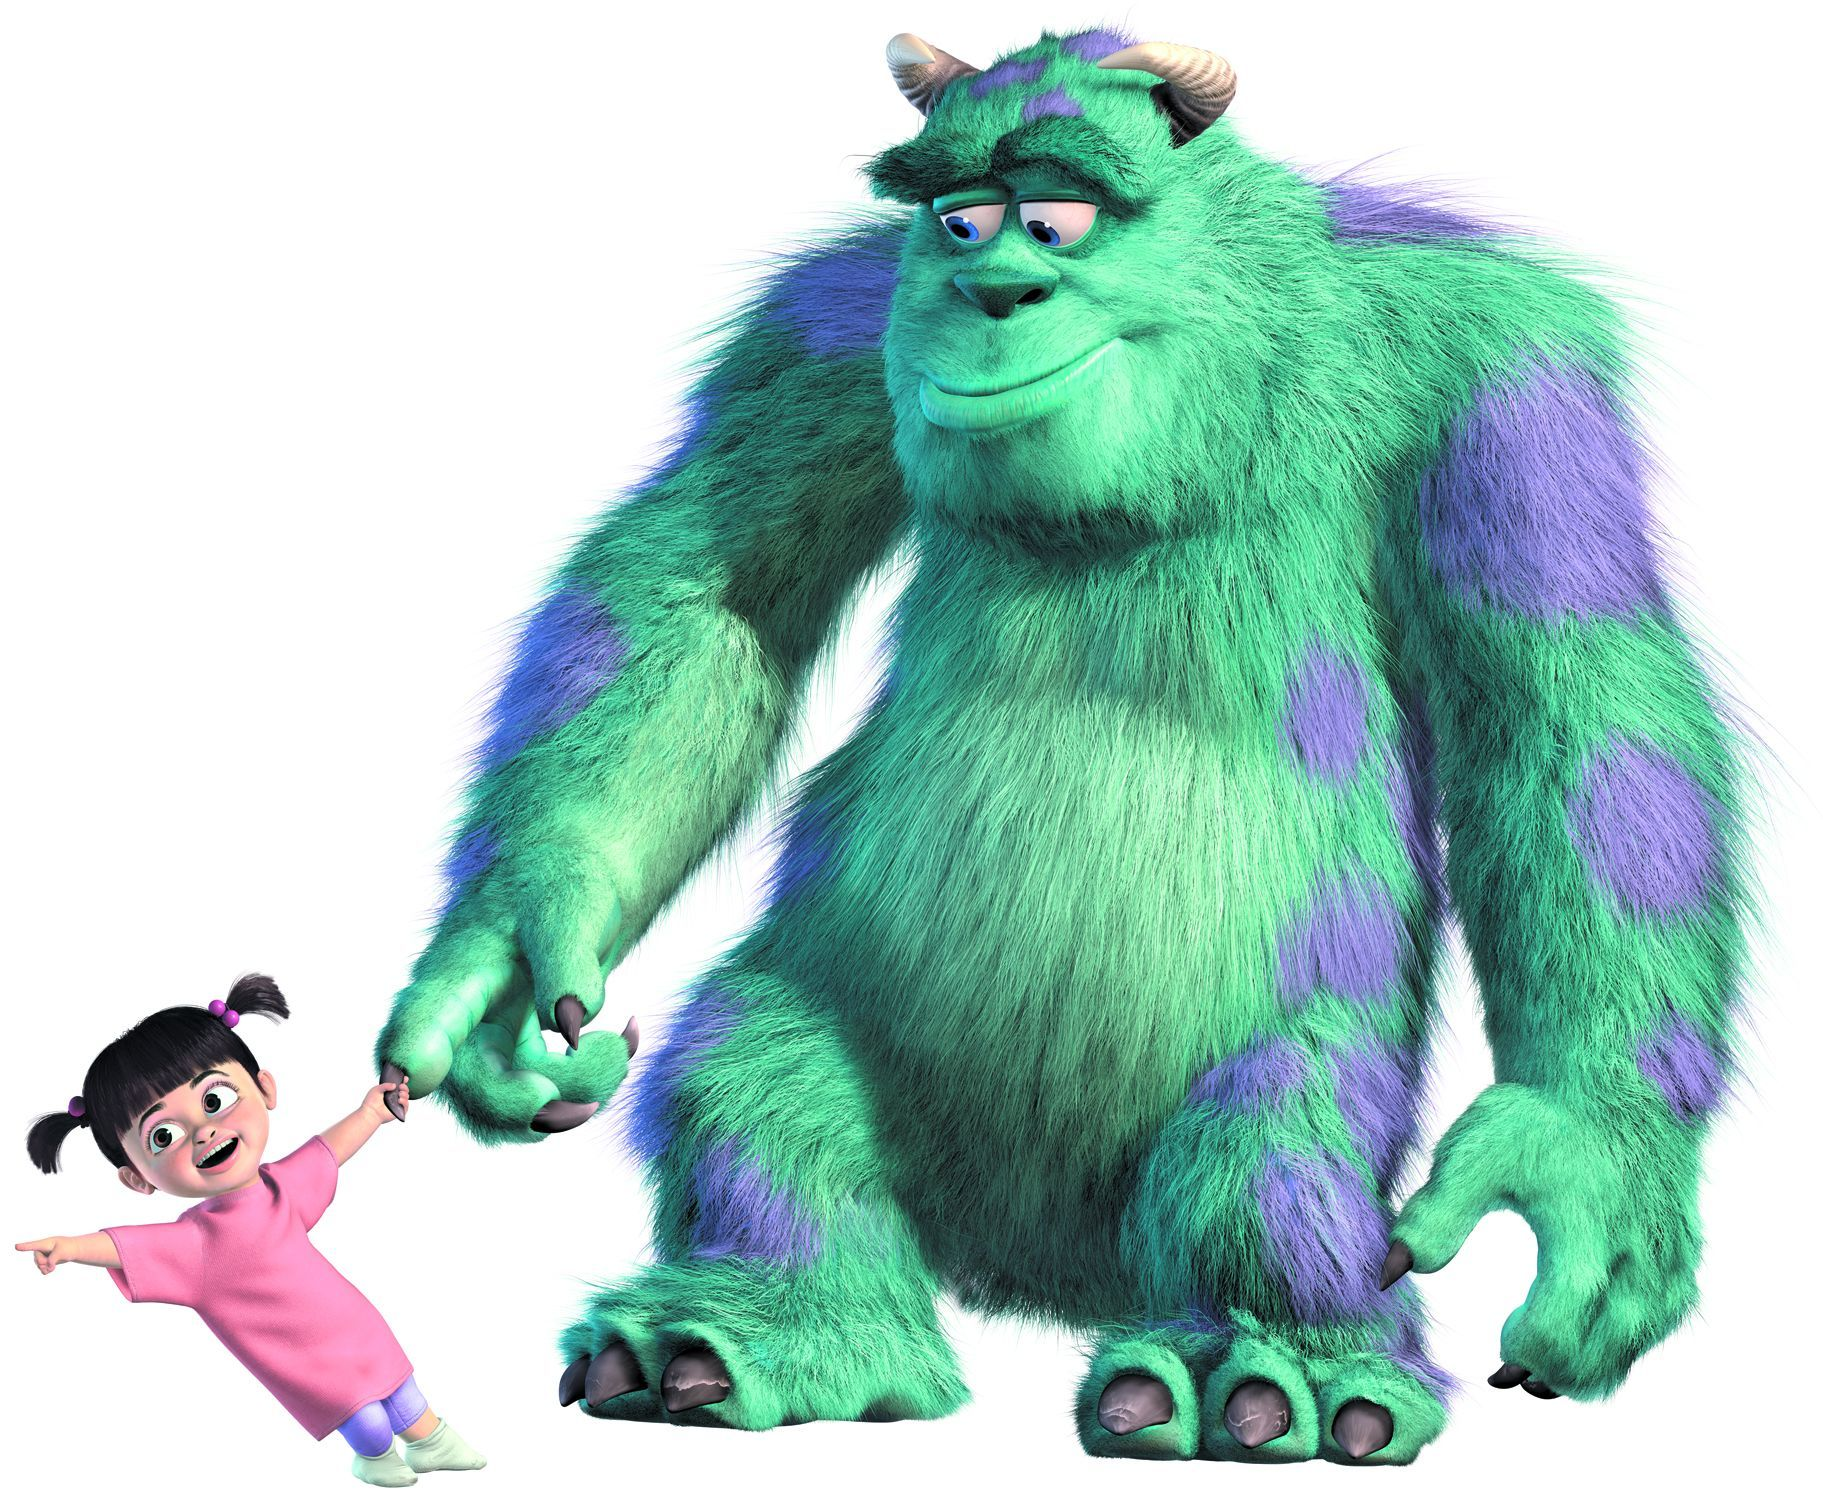 Uncategorized Sulley Mike And Boo monsters inc pixar wiki fandom powered by wikia sully and boo mi